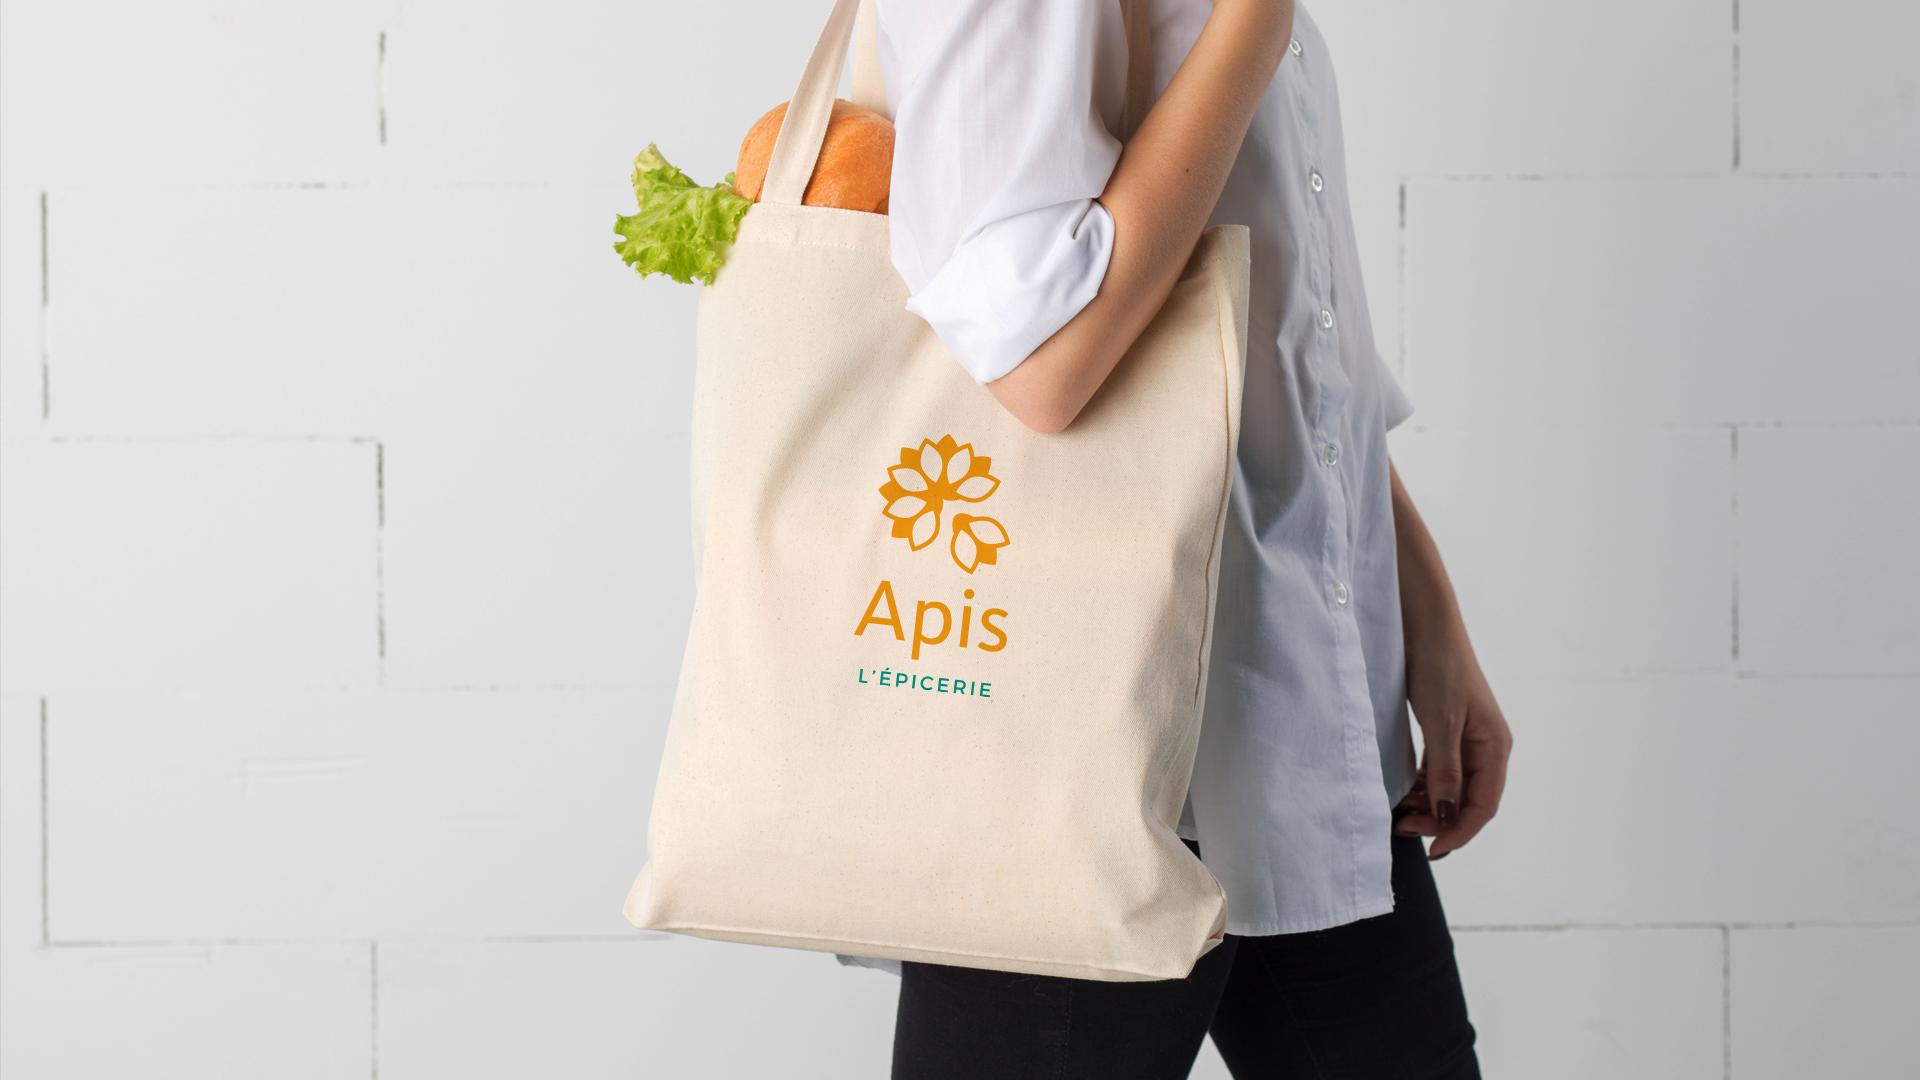 Association Apis - Tote bag